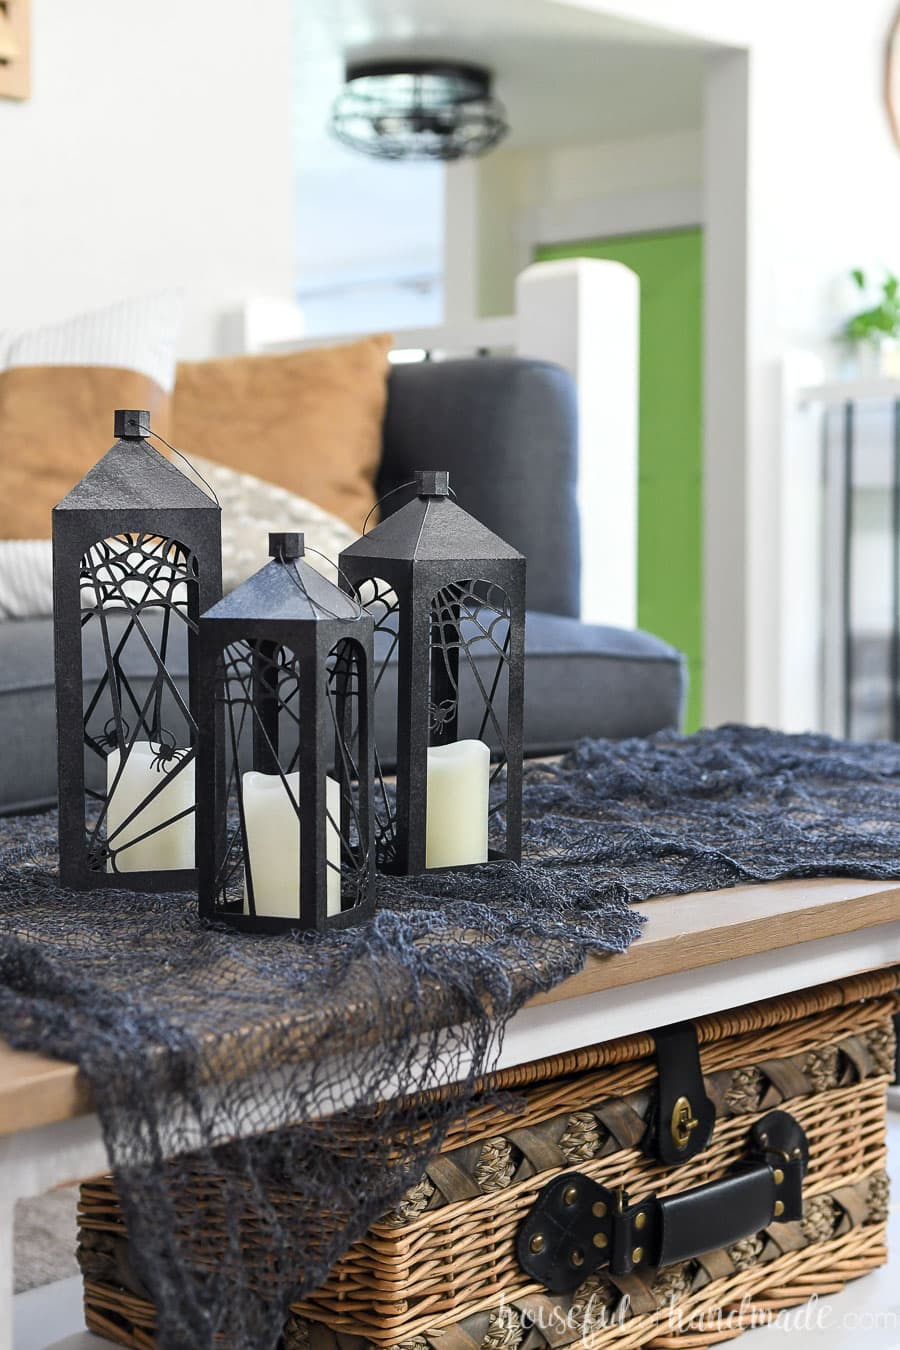 Three black Halloween lanterns on a table with candles inside.